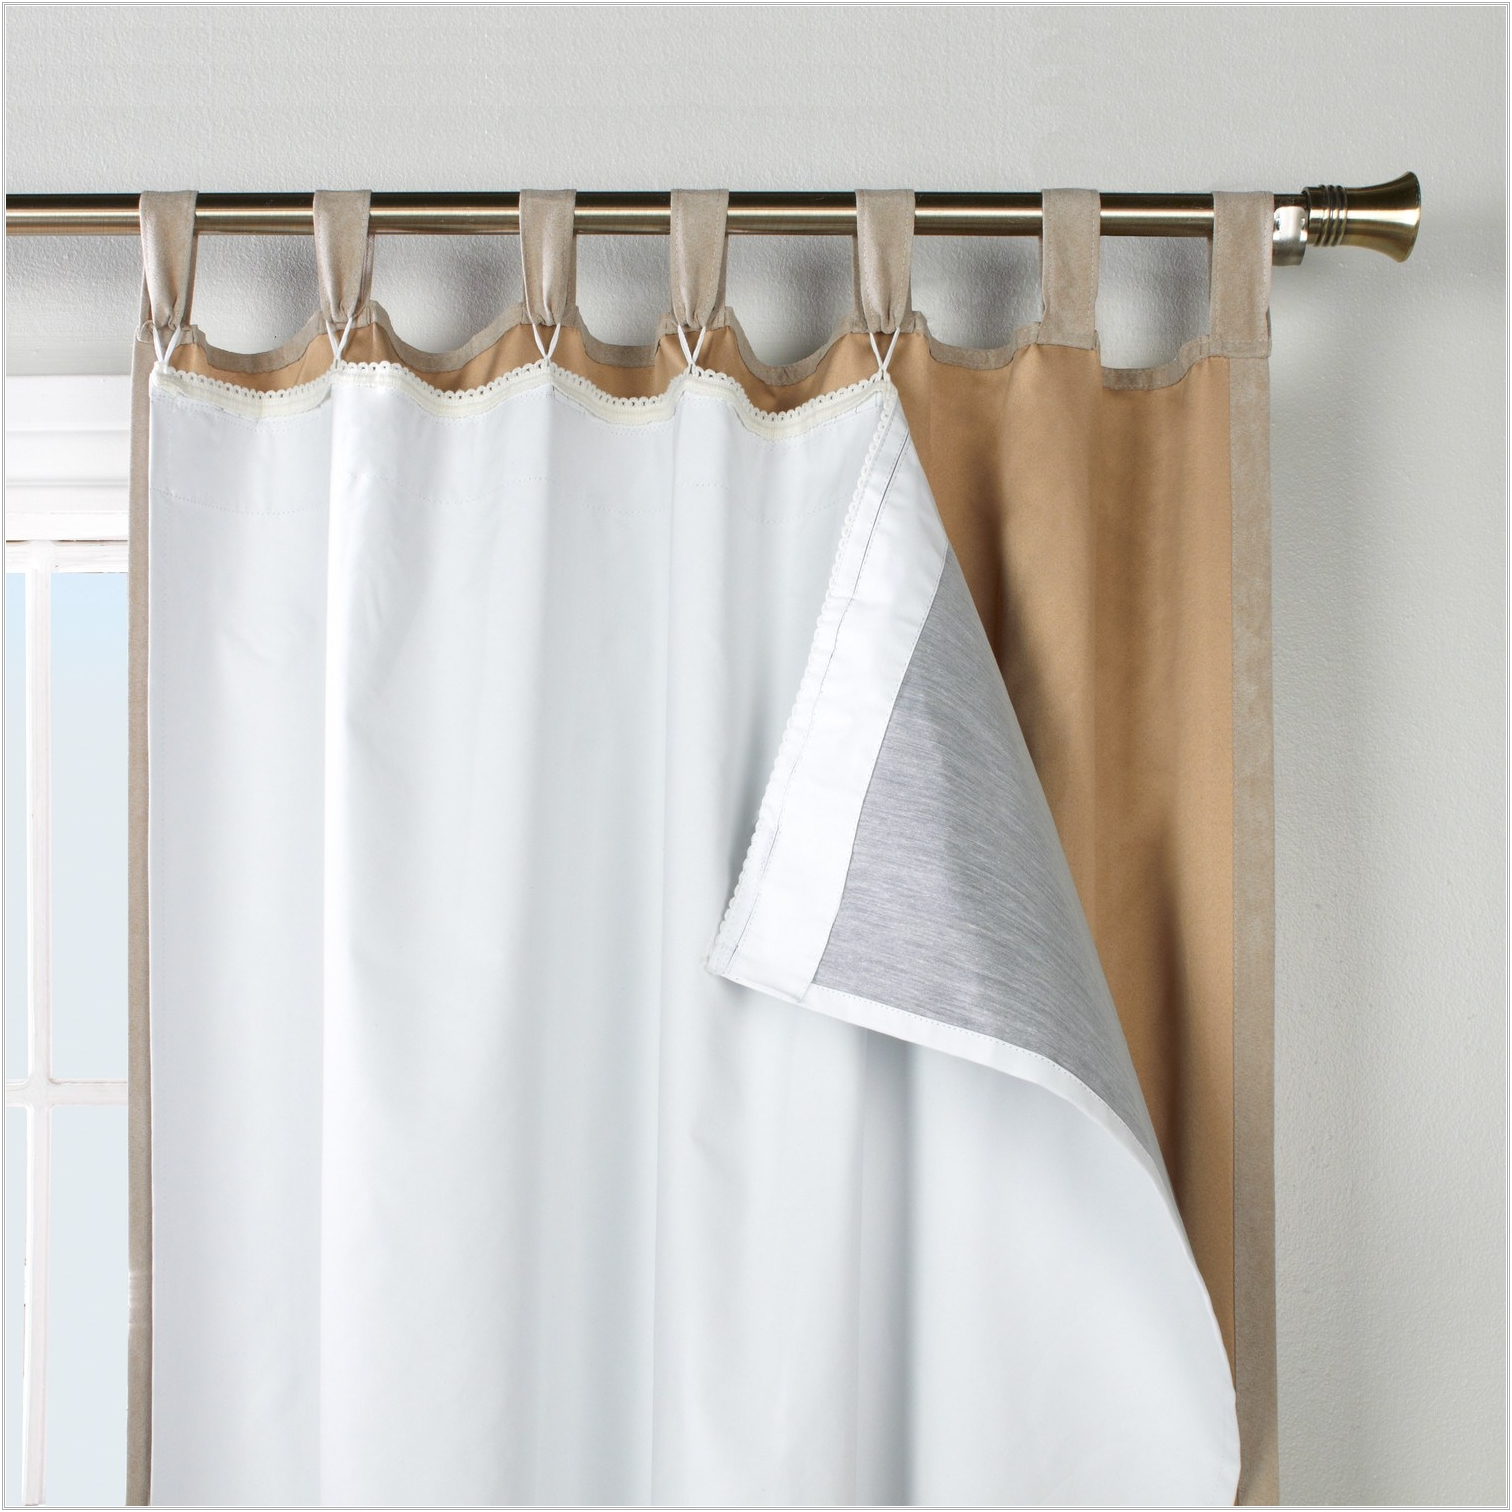 Extra Long Shower Curtain Liner 96 | Shower Curtain Liner | Shower Curtain Liner